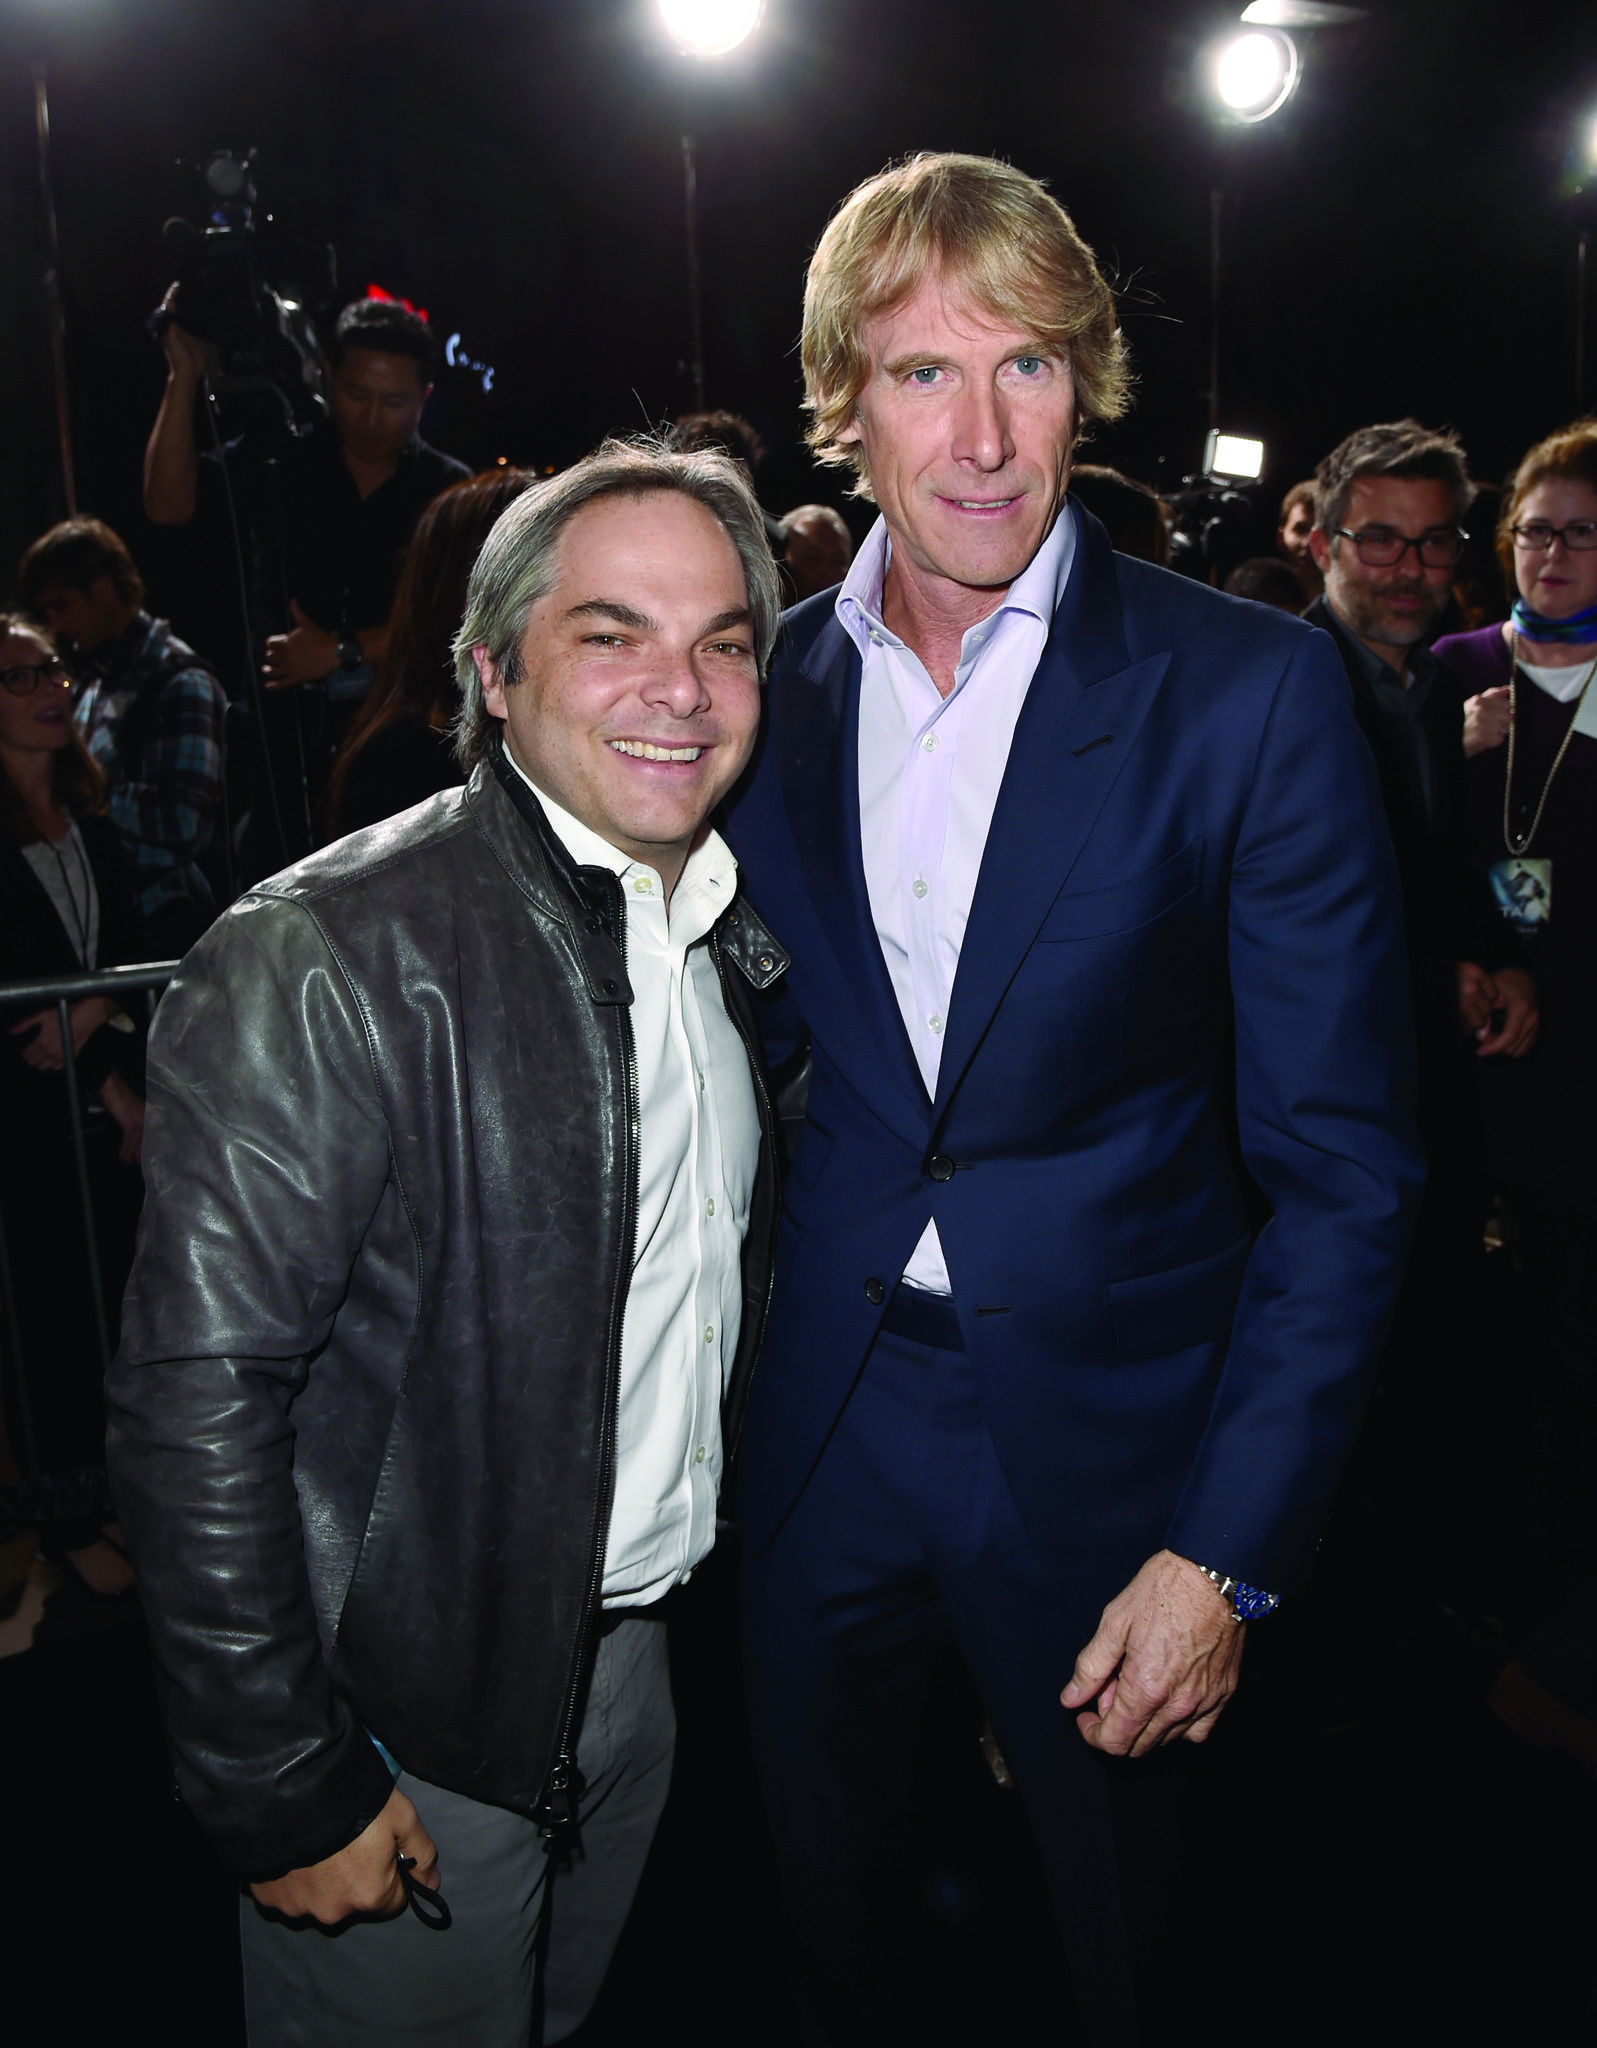 Michael Bay at an event for Project Almanac (2015)